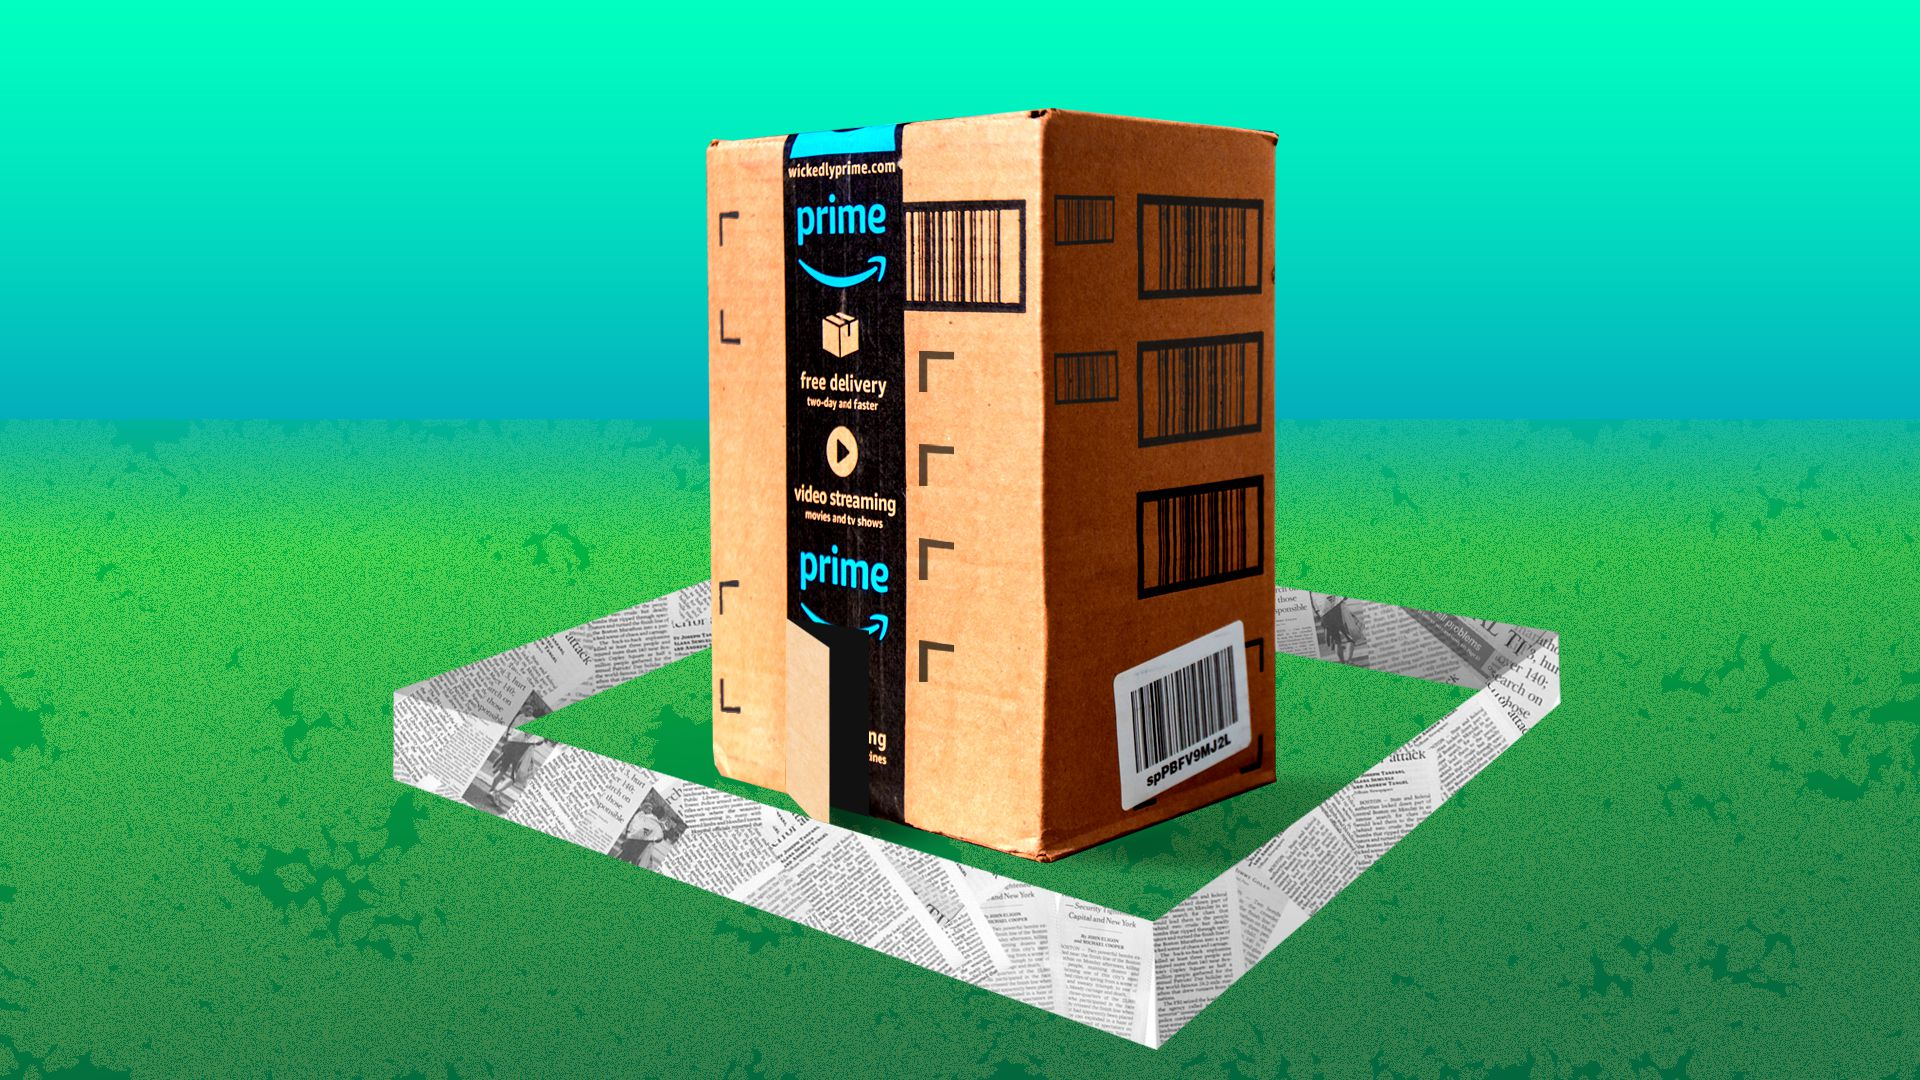 Illustration of an Amazon package surrounded by a newspaper fence